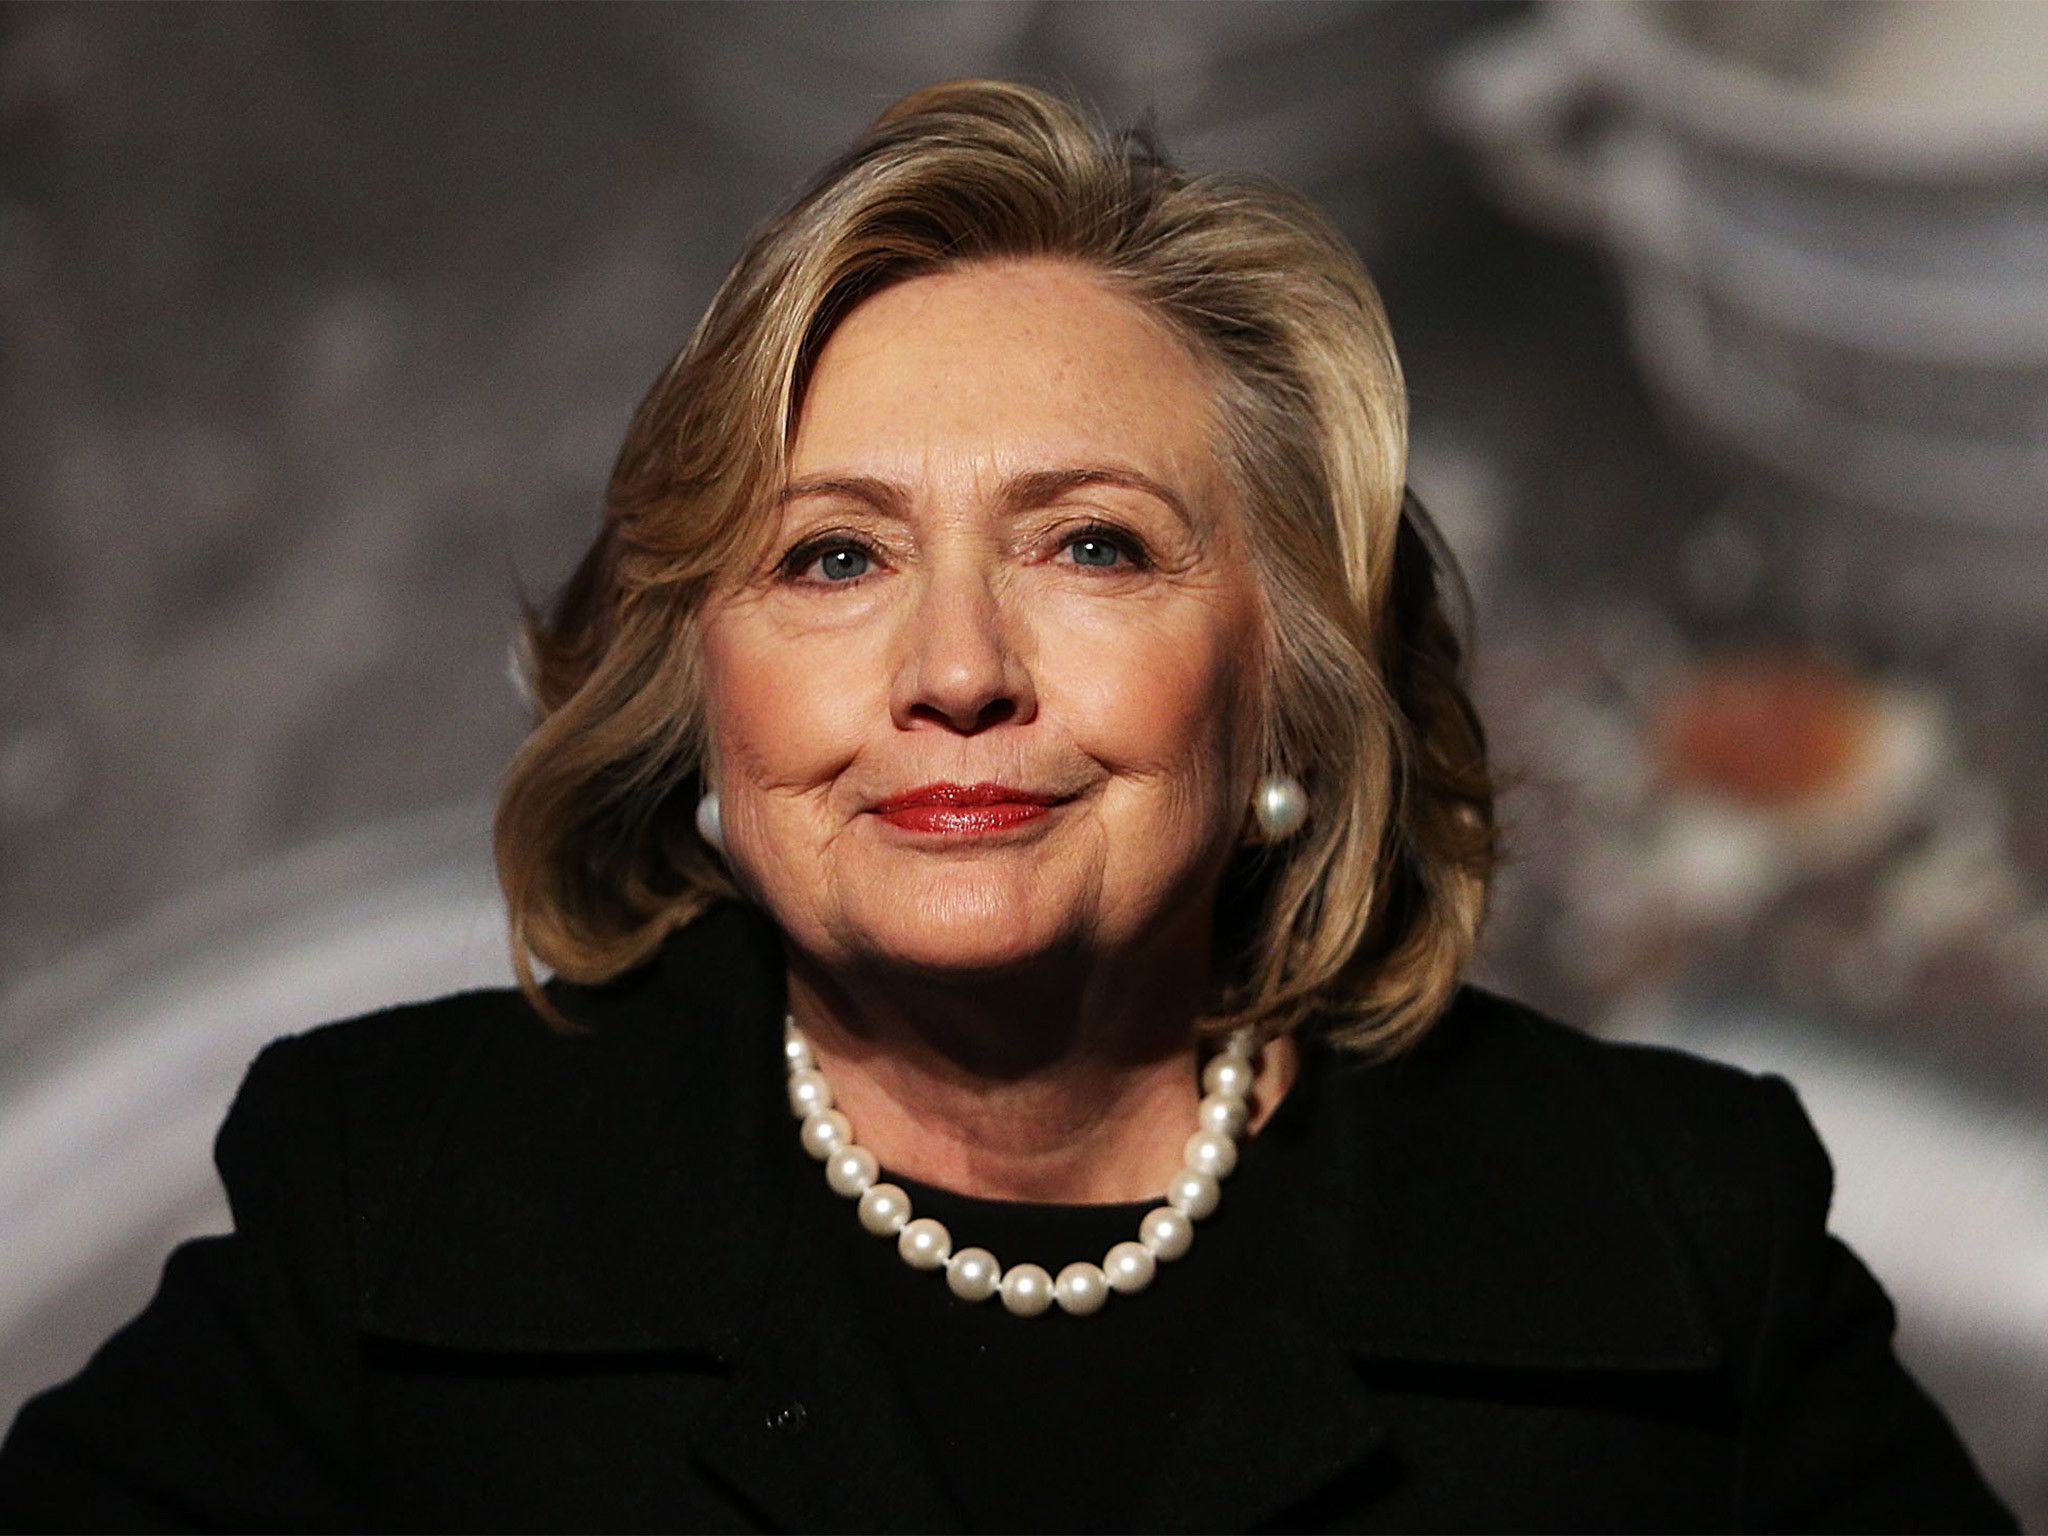 2048x1536 Foreign cash revelations threat to Hillary Clinton's presidential plans |  The Independent